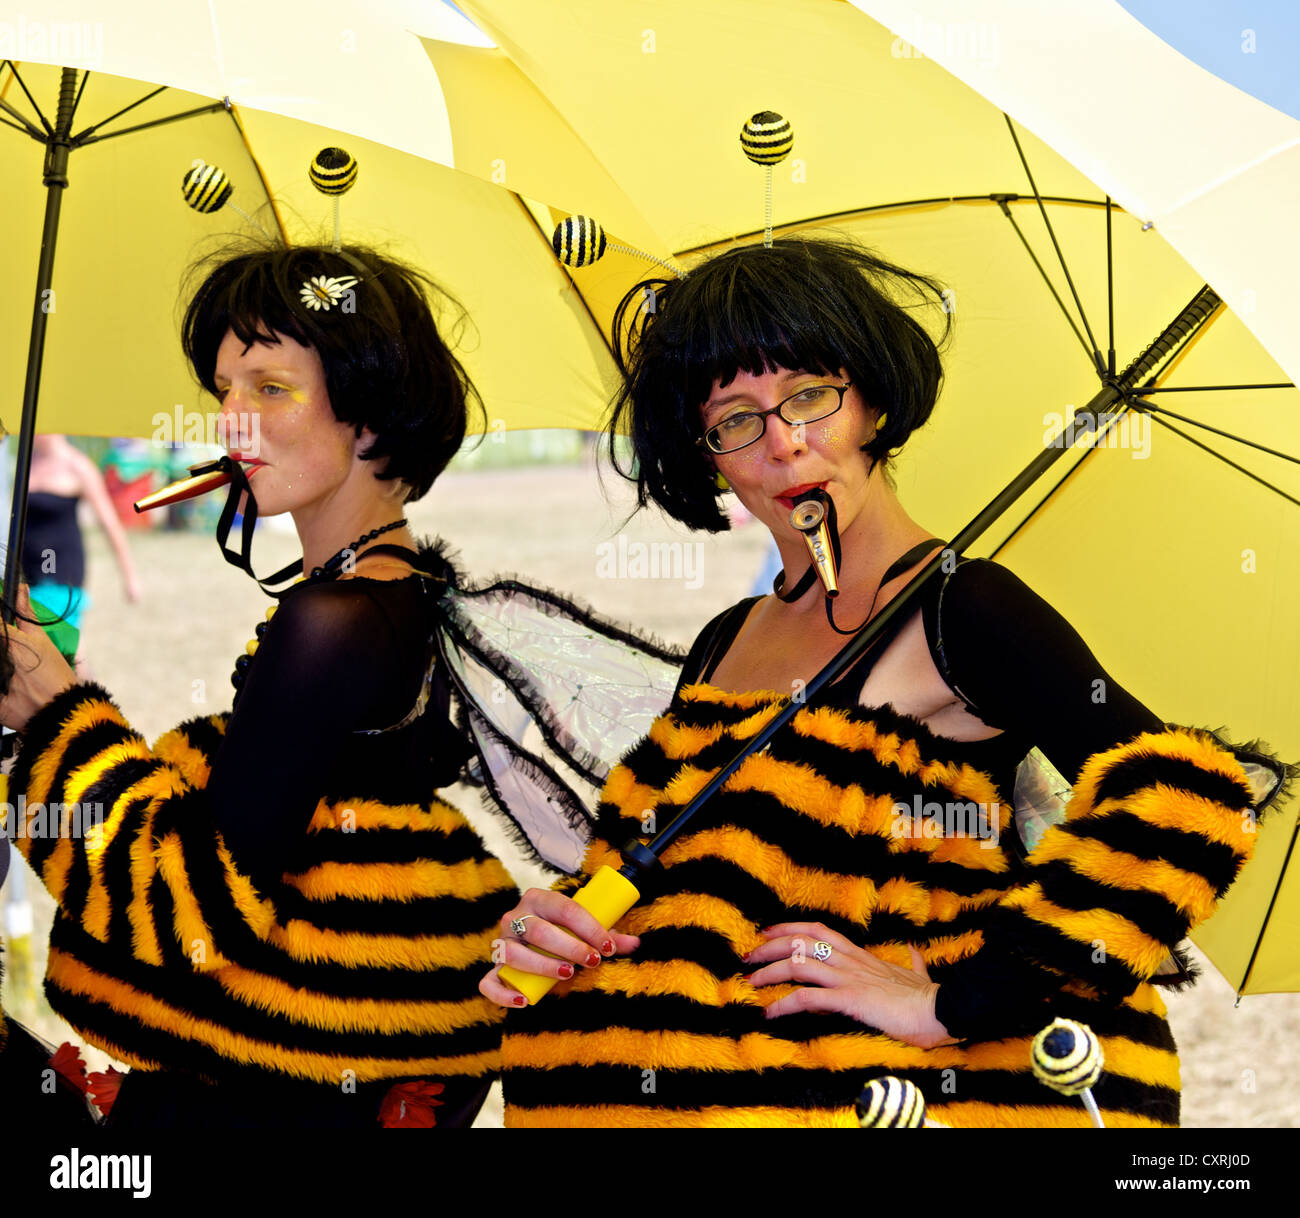 Two women  playing Kazoos whilst sheltering from the sun under a large yellow umbrella at the Glastonbury Festival - Stock Image